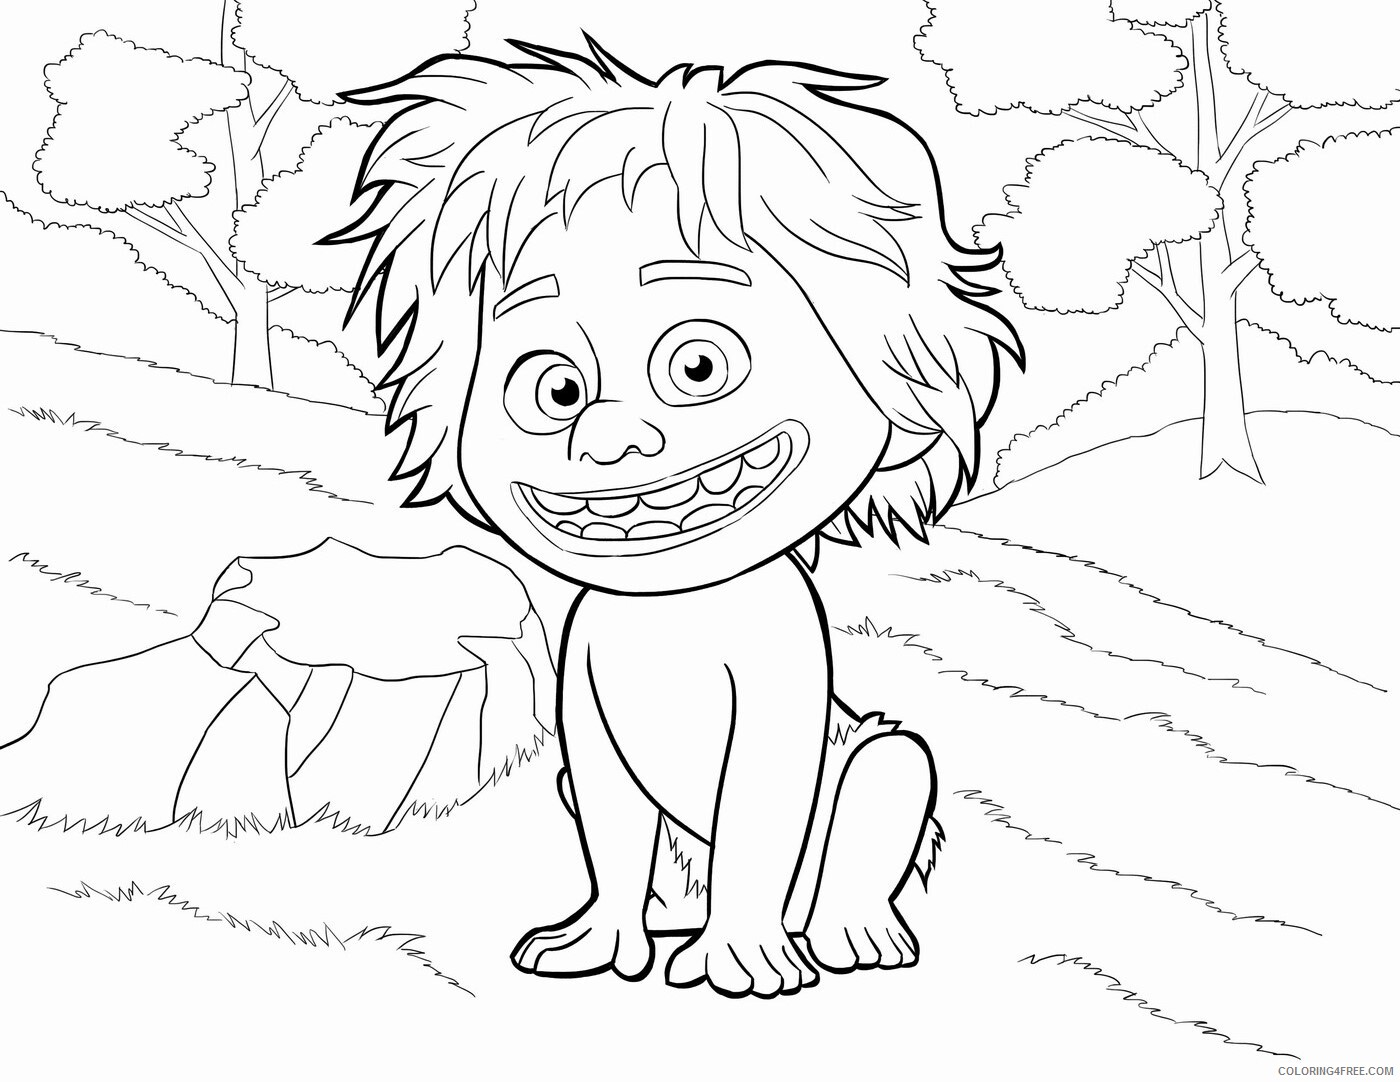 The Good Dinosaur Coloring Pages TV Film Printable 2020 08831 Coloring4free